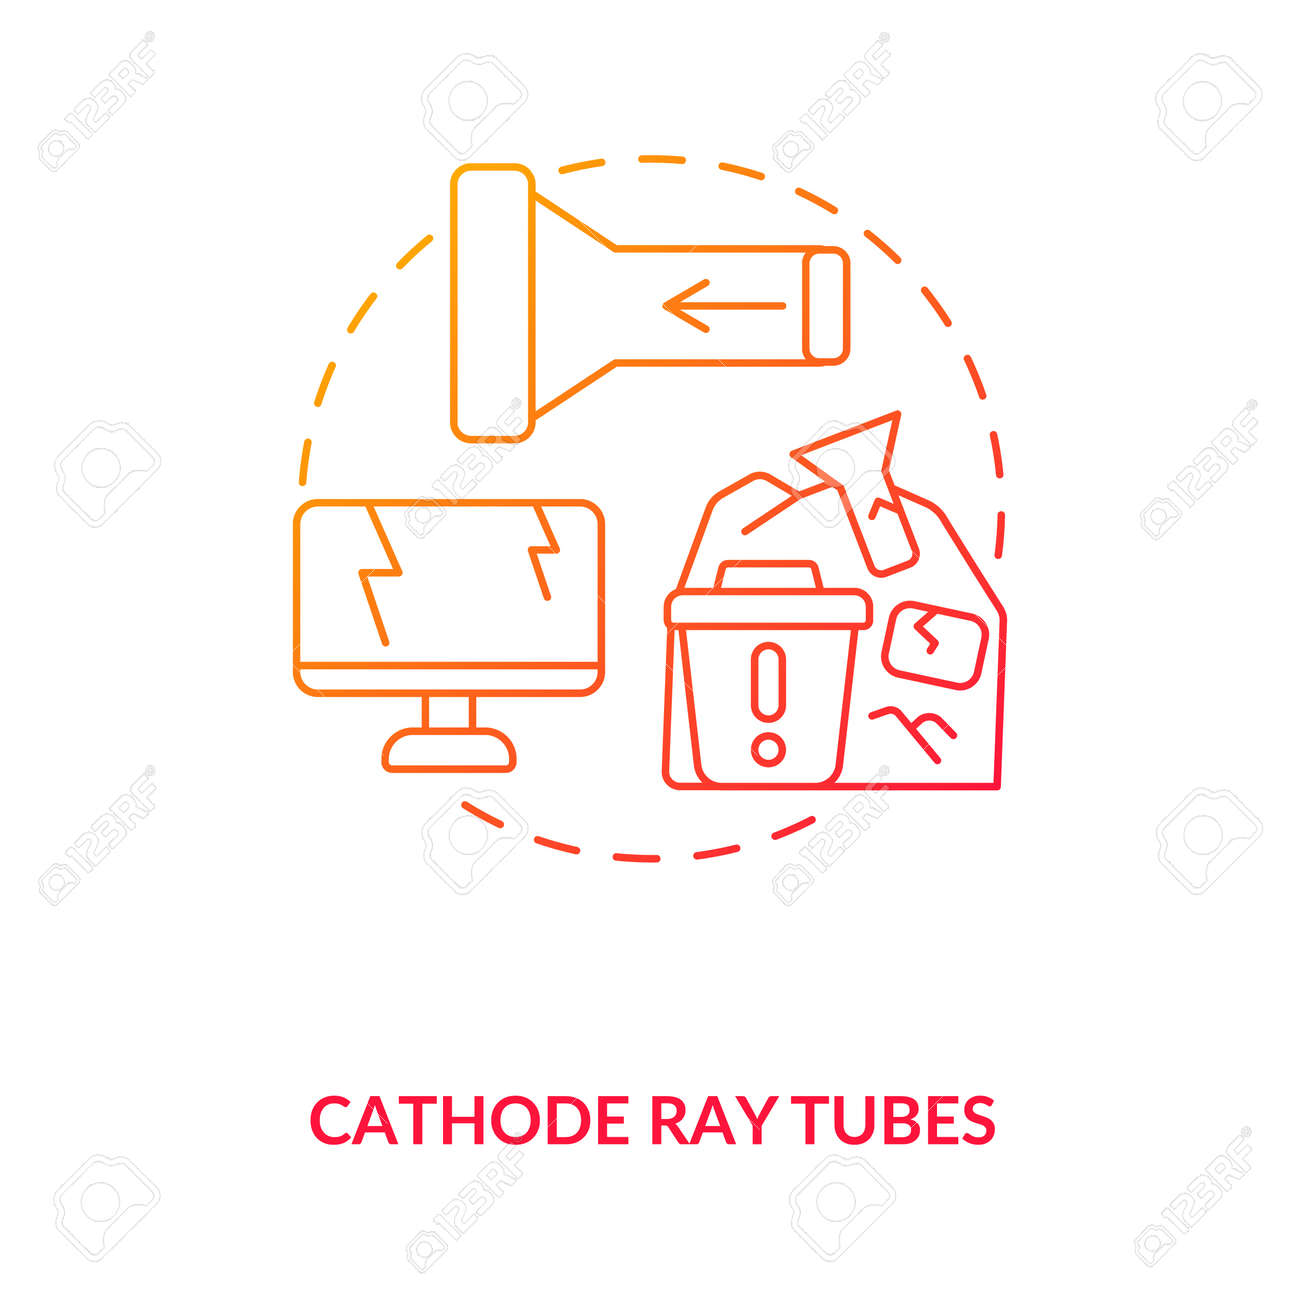 Cathode ray tubes concept icon. E-waste component idea thin line illustration. CRT glass recycling. Hazardous waste. Electrical and electronic equipment. Vector isolated outline RGB color drawing - 167538913